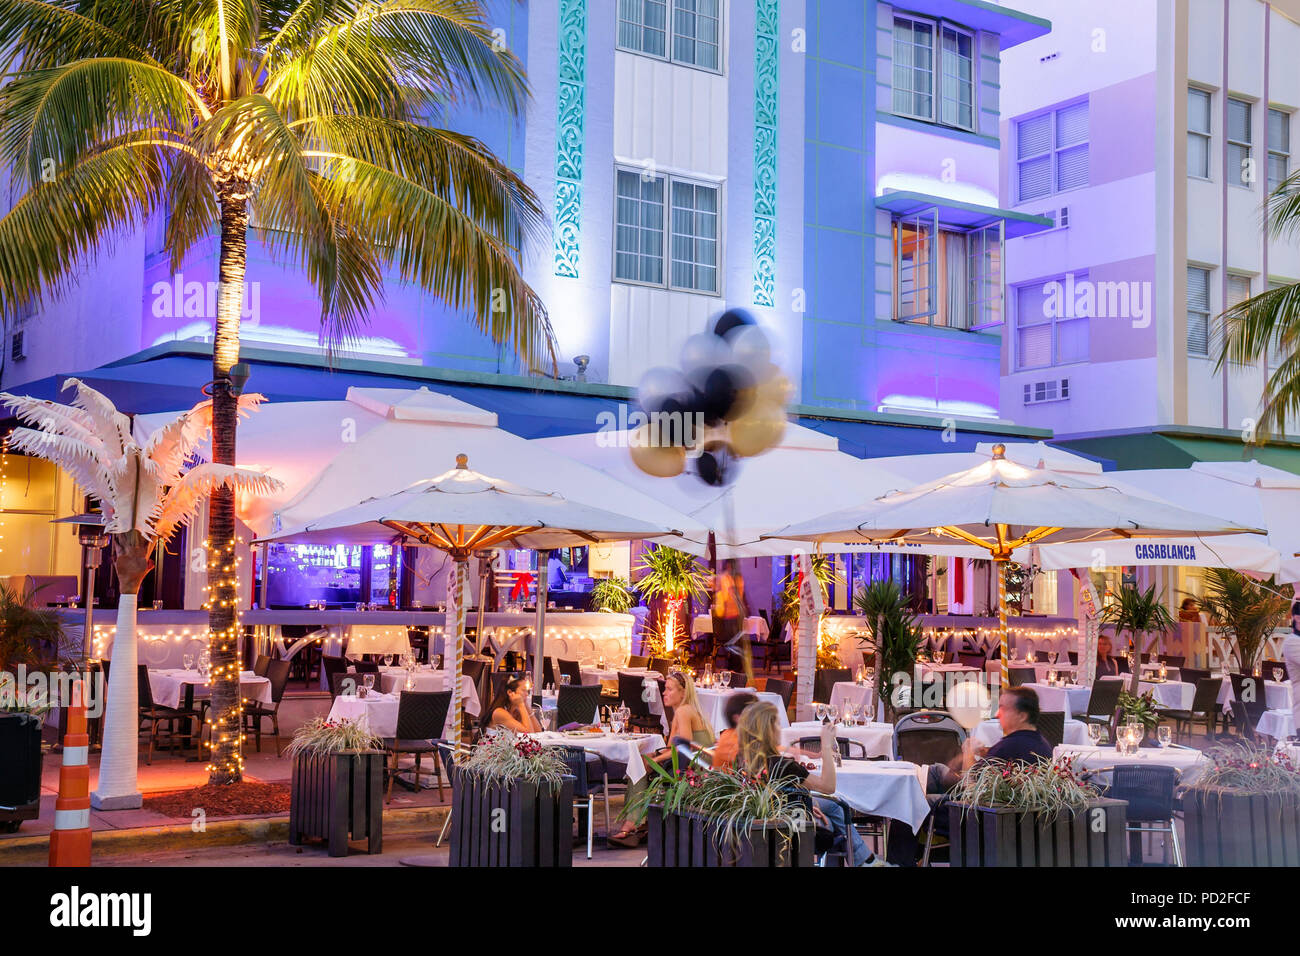 Miami Beach Florida Art Deco District Ocean Drive New Years Eve Night Nightlife Alfresco Dining Casablanca Hotel Palm Tree Li